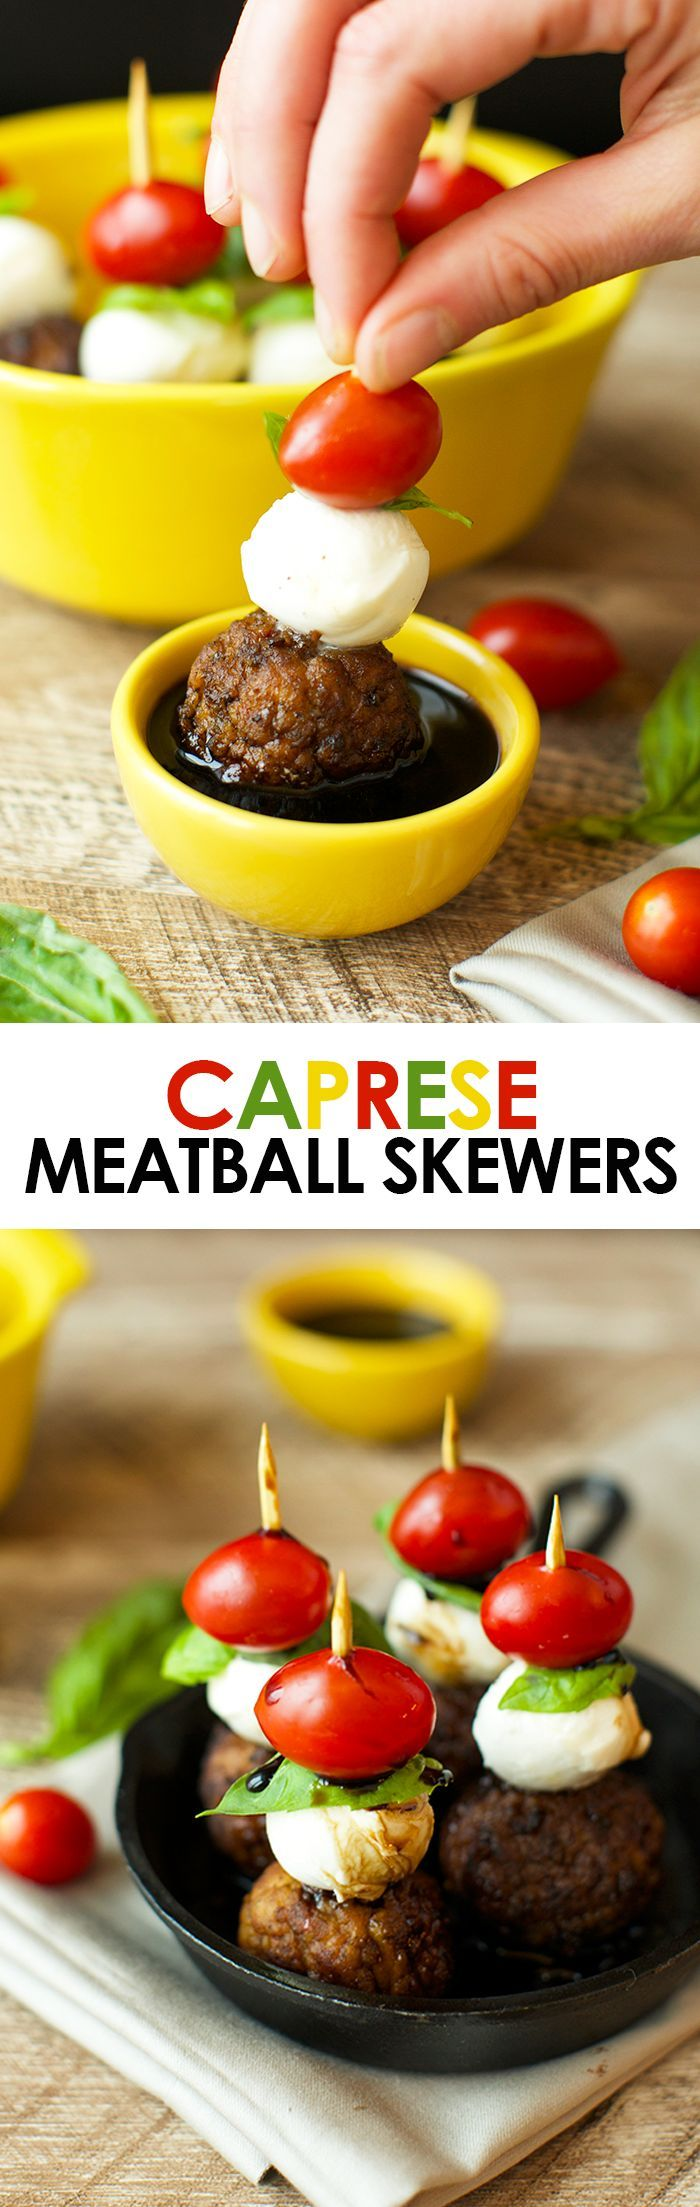 These Caprese Meatball Skewers are the ultimate party appetizer made with balsamic meatballs, fresh mozzarella, basil, and a cherry tomato!